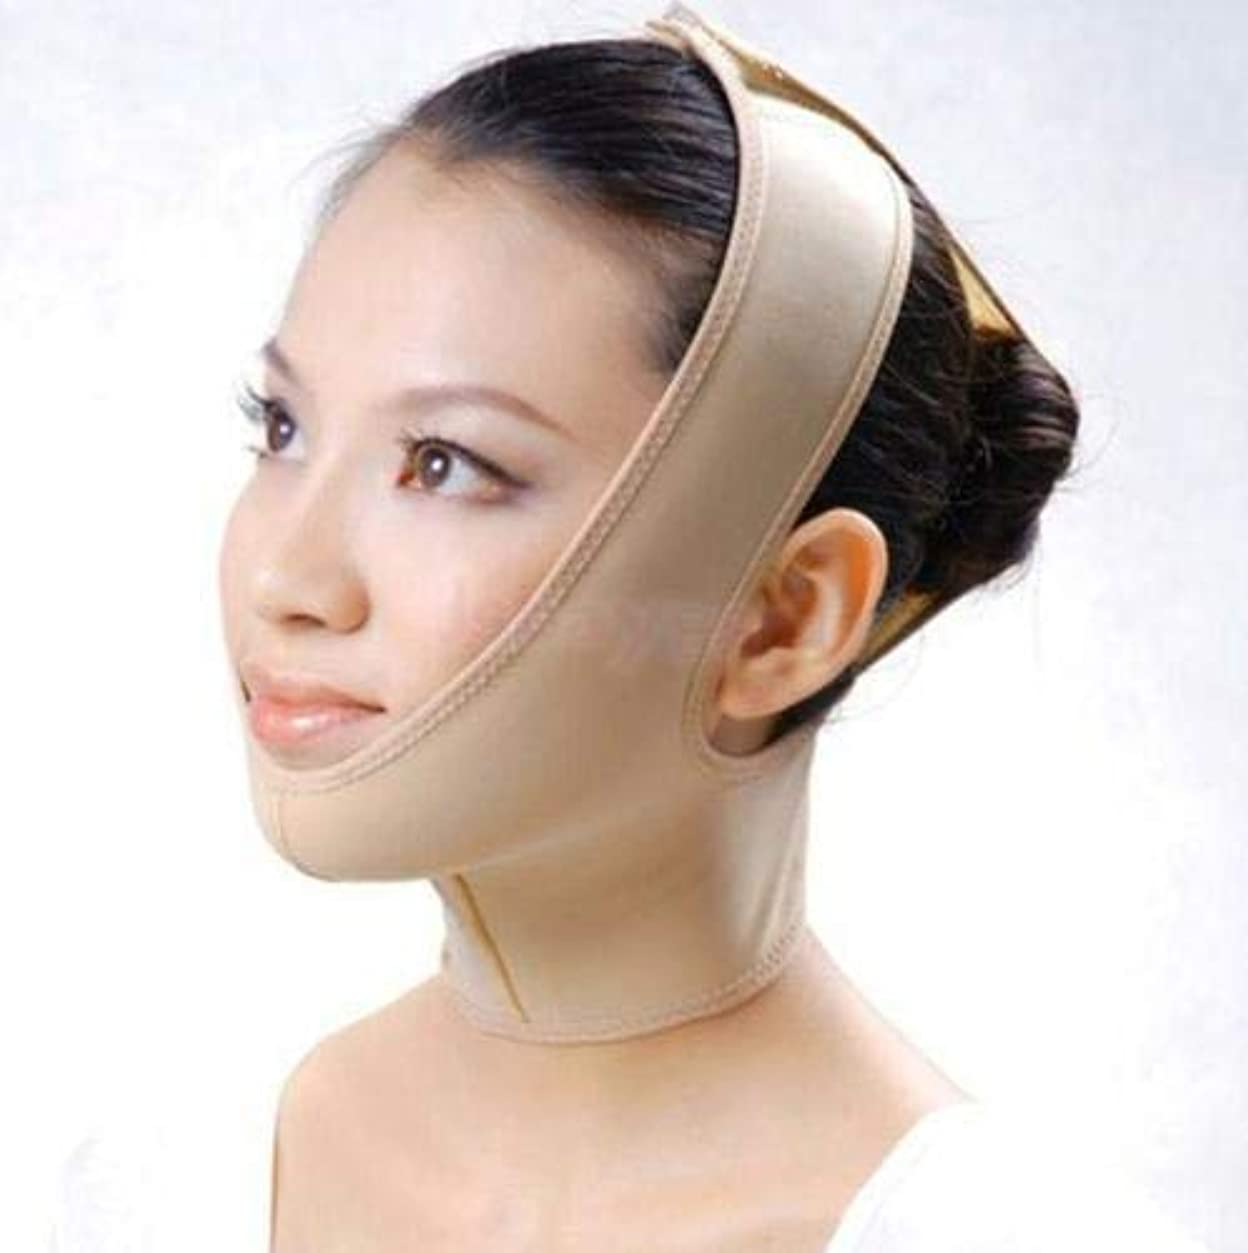 地殻フィルタ磨かれたFidgetGear ANTI WRINKLE V FACE CHIN CHEEK LIFT UP SLIMMING THIN BELT MASK STRAP BAND S-XXL Small